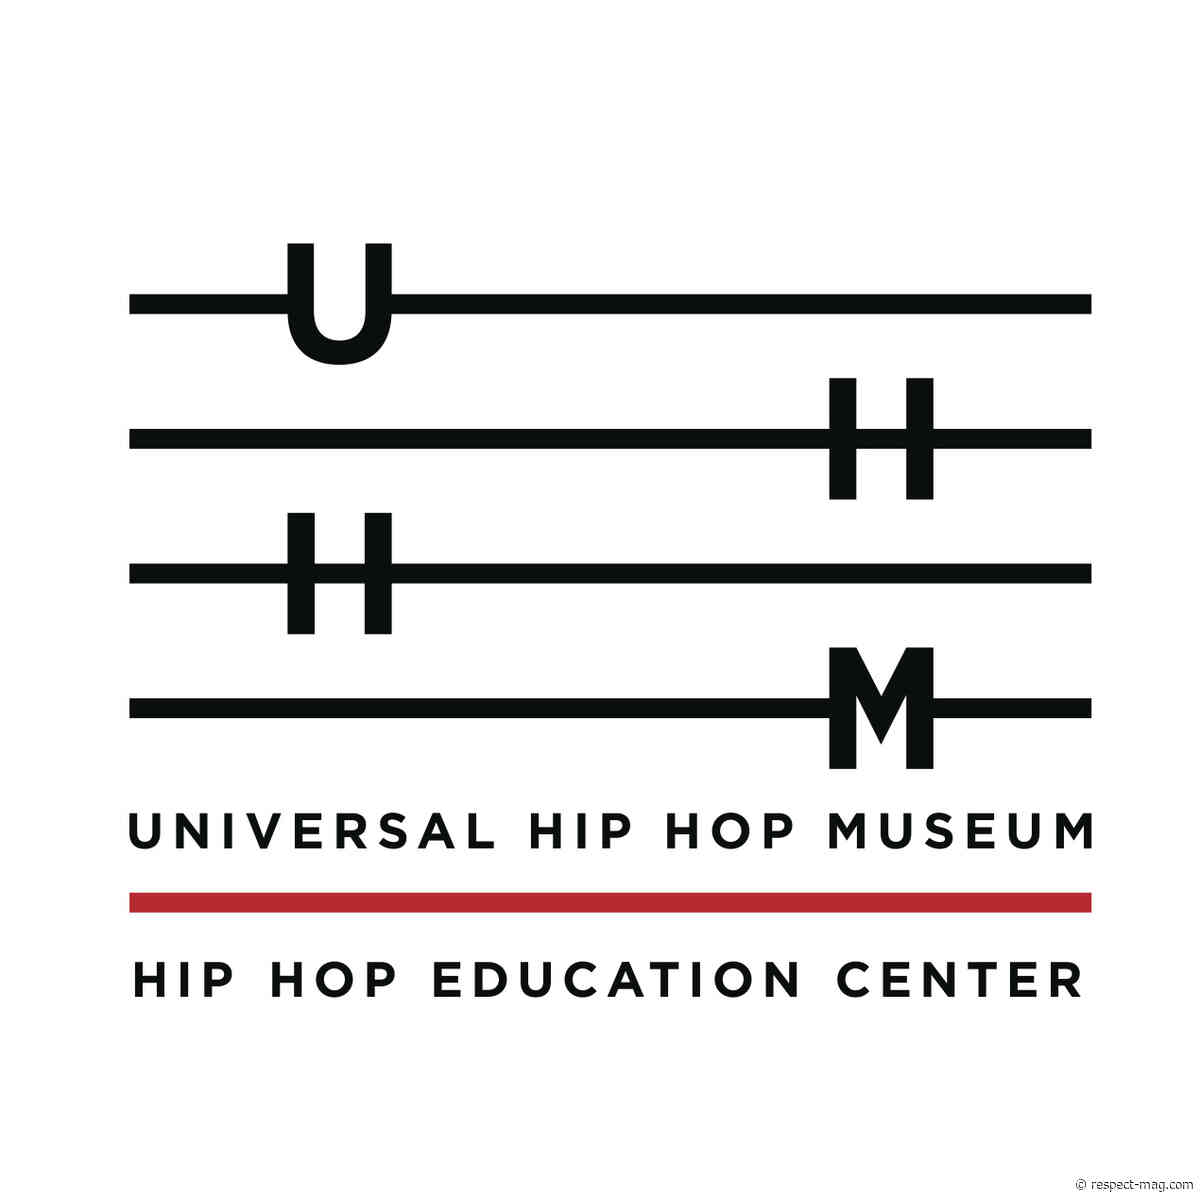 Universal Hip- Hop Museum Celebrates Women In Hip-Hop With A New Women's History Month Campaign - RESPECT.